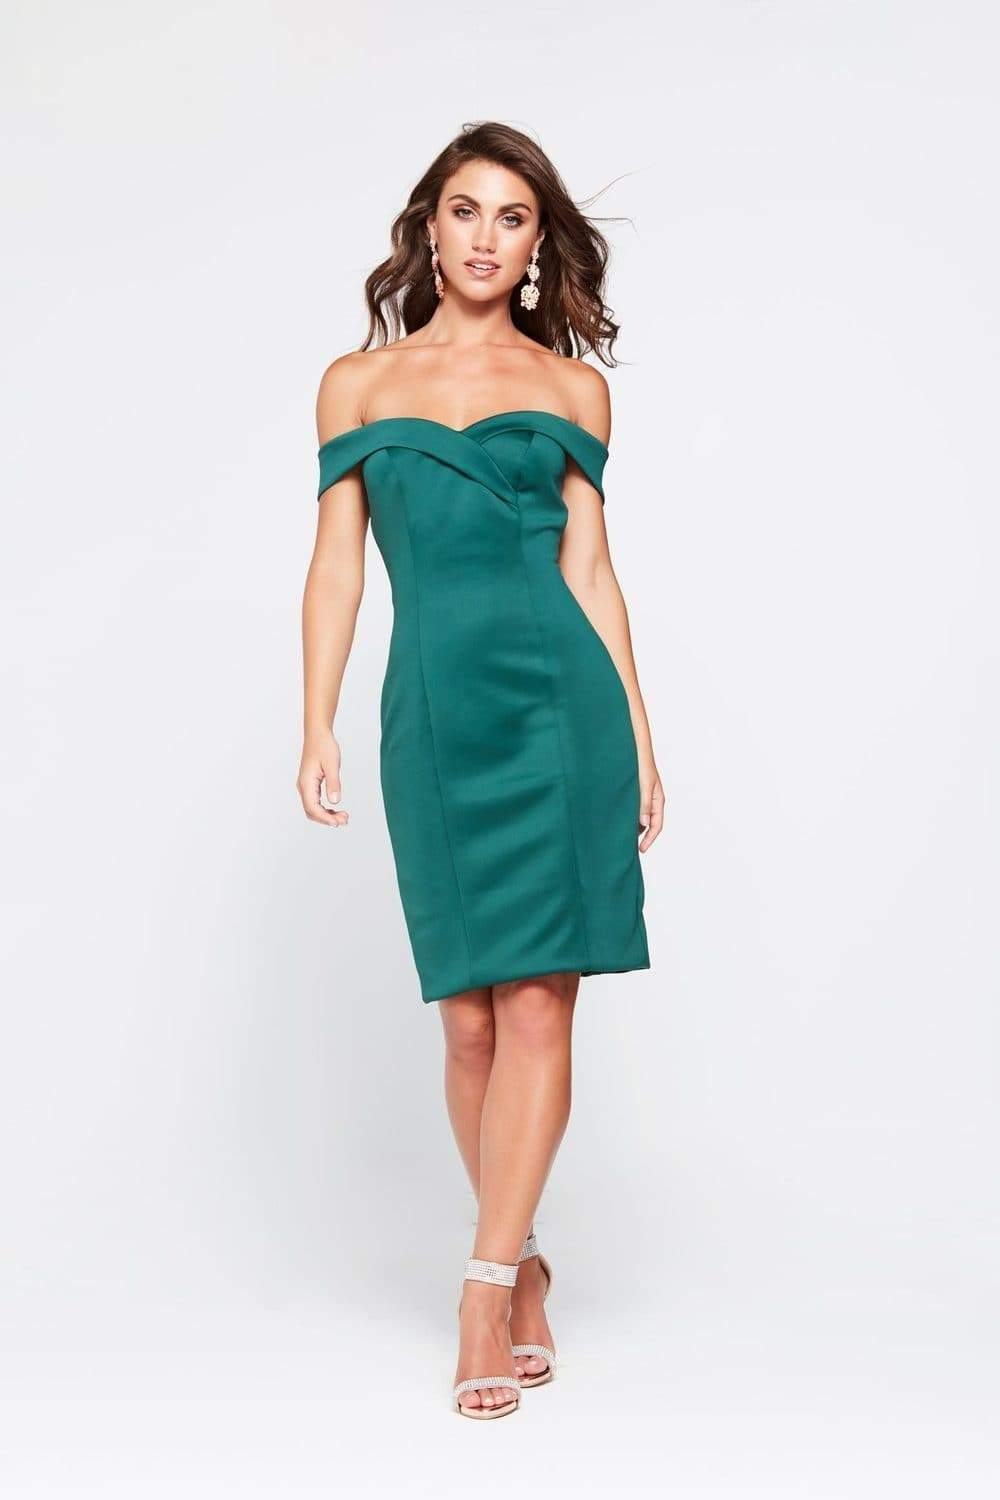 Final sale - Ester Ponti Cocktail Dress - Emerald